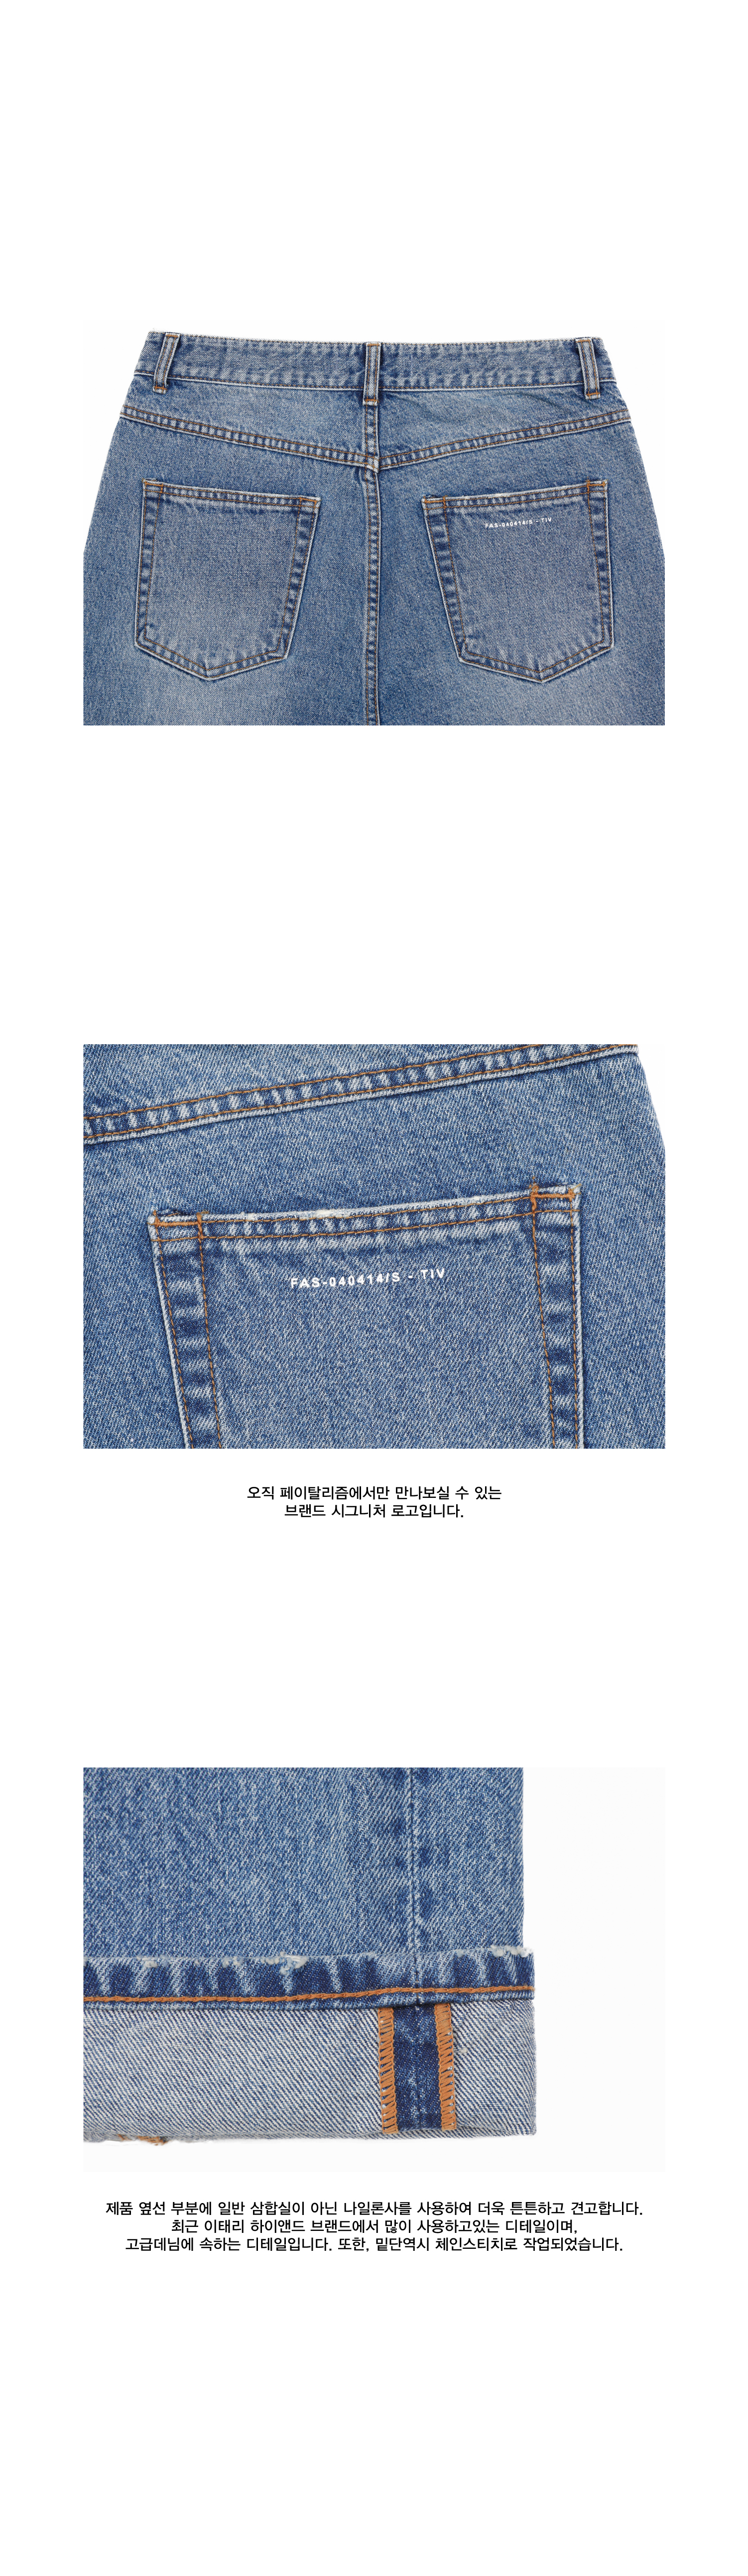 페이탈리즘(FATALISM) #0199 Sensitive -B standard fit